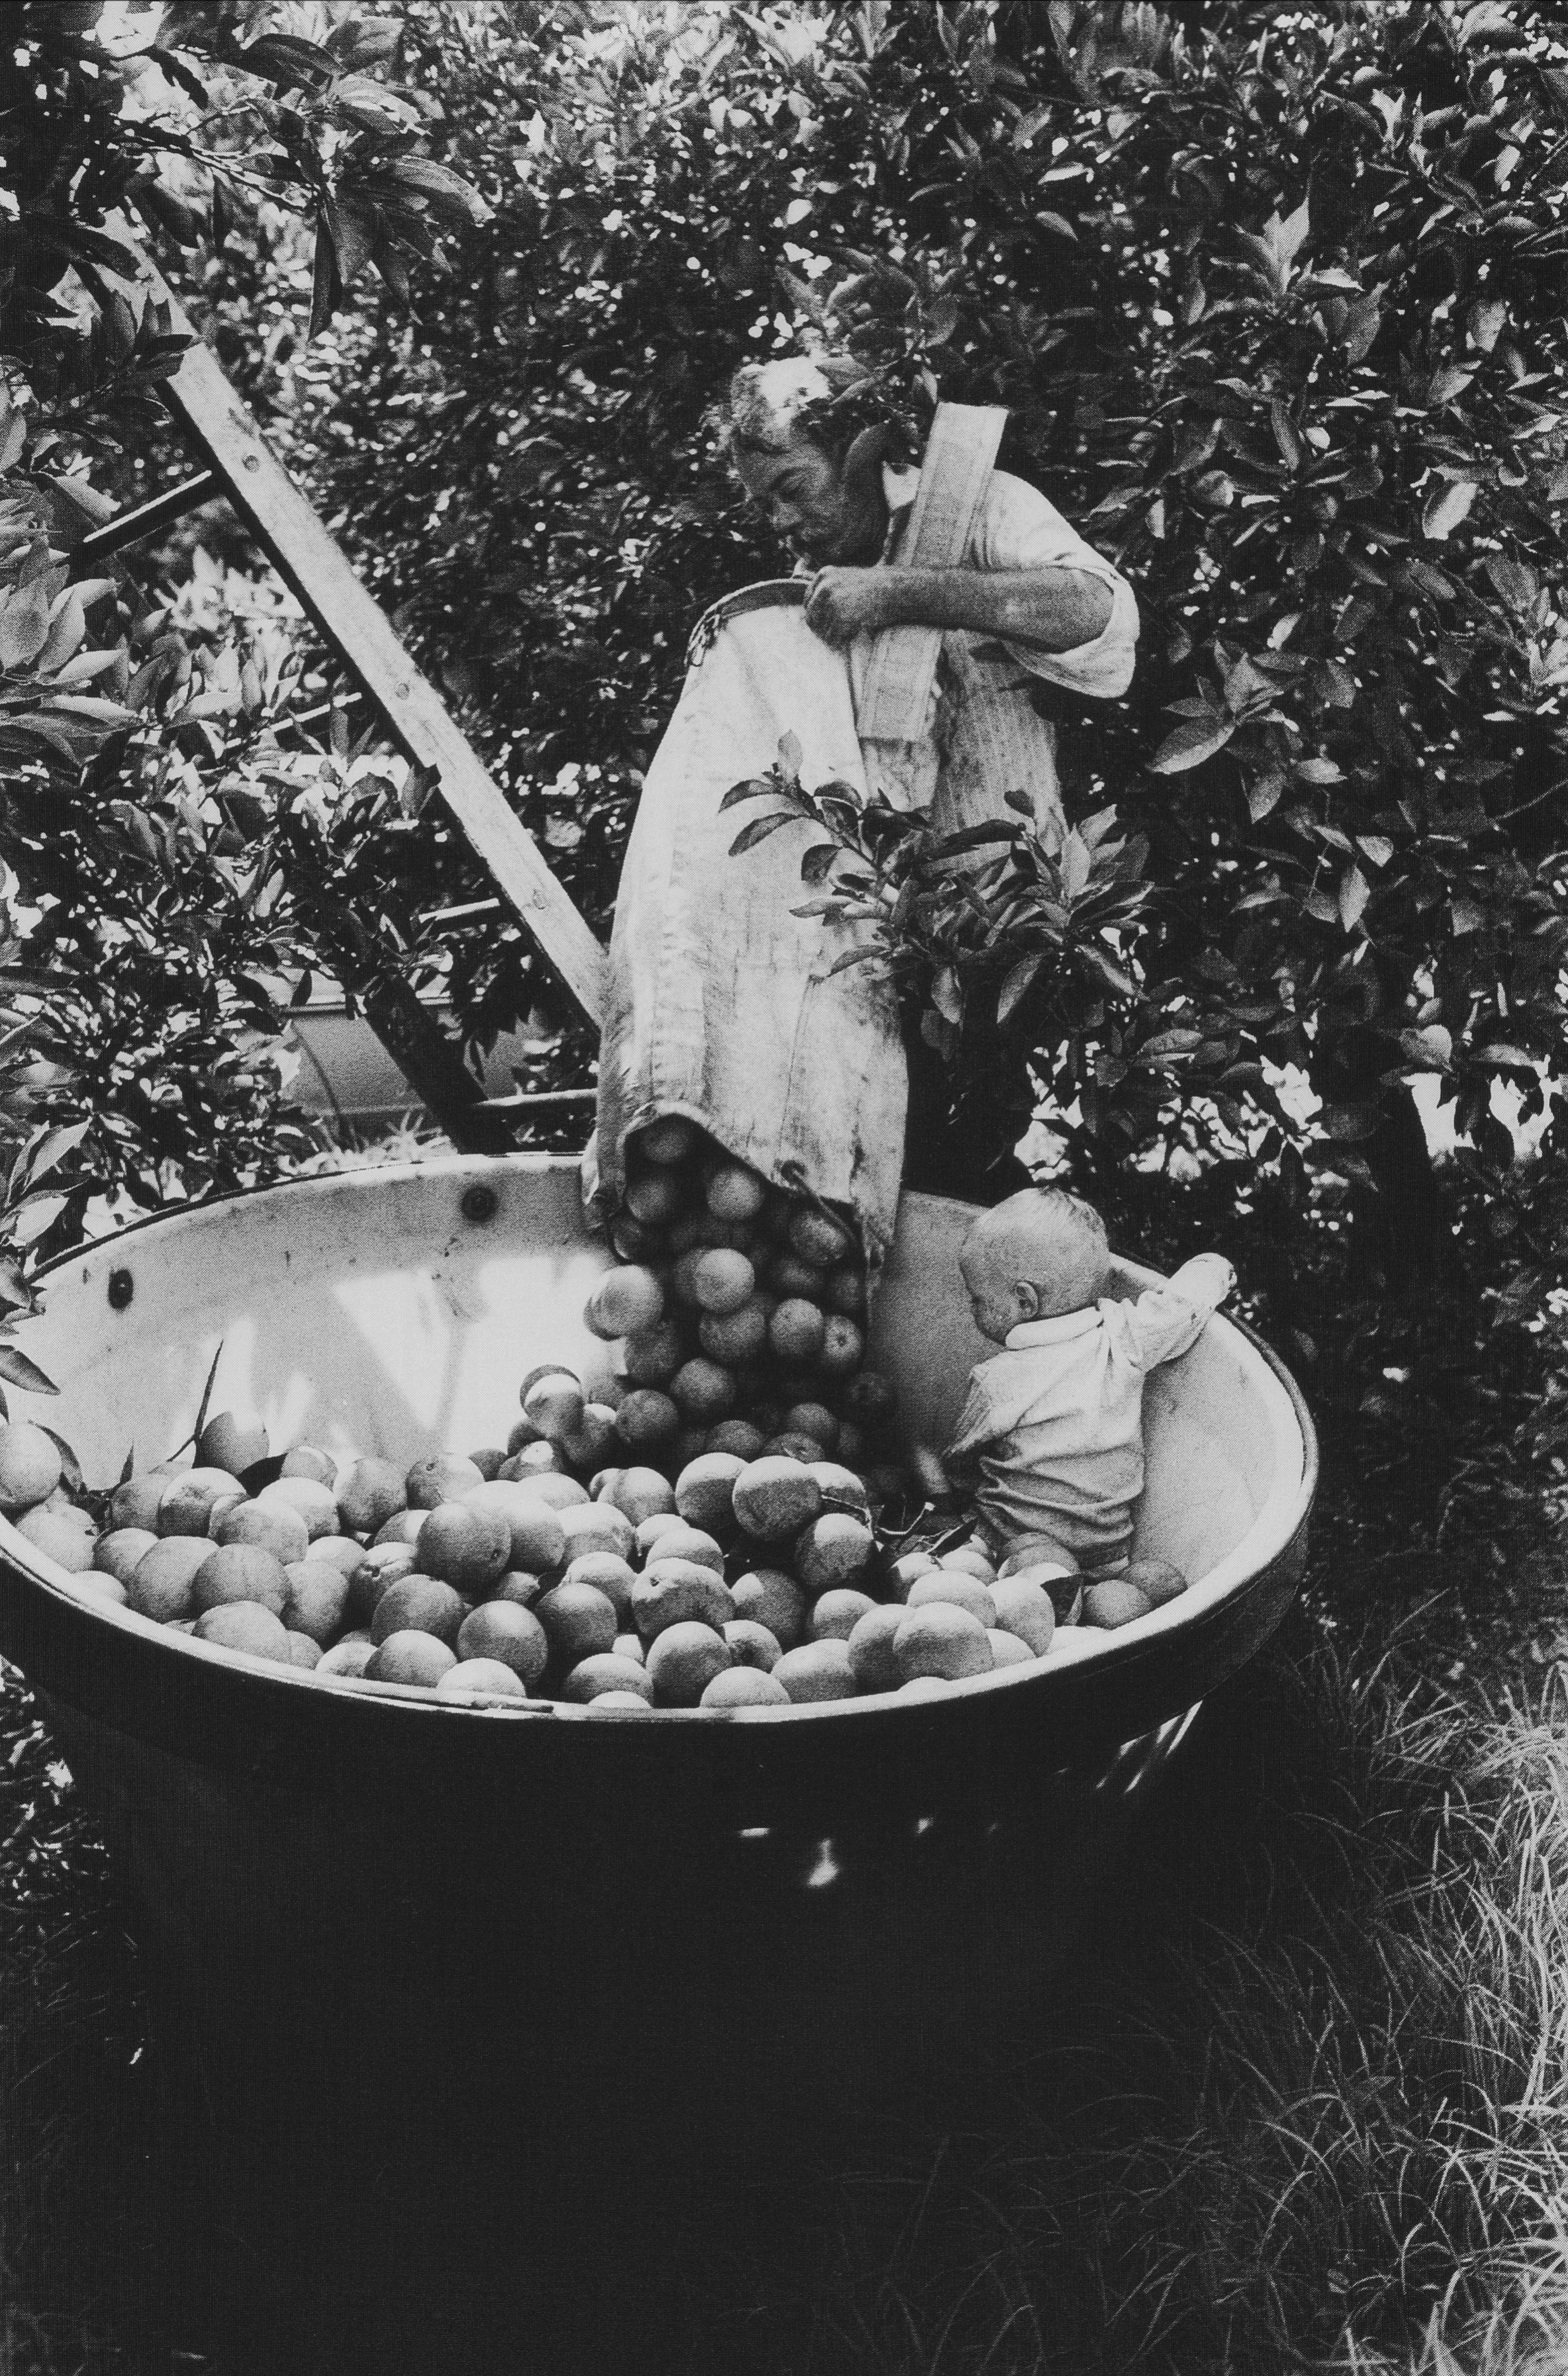 Calvin Tindal emptying citrus pick sack while Shannon watches oranges fall into plastic tub, Loxahatchee, FL